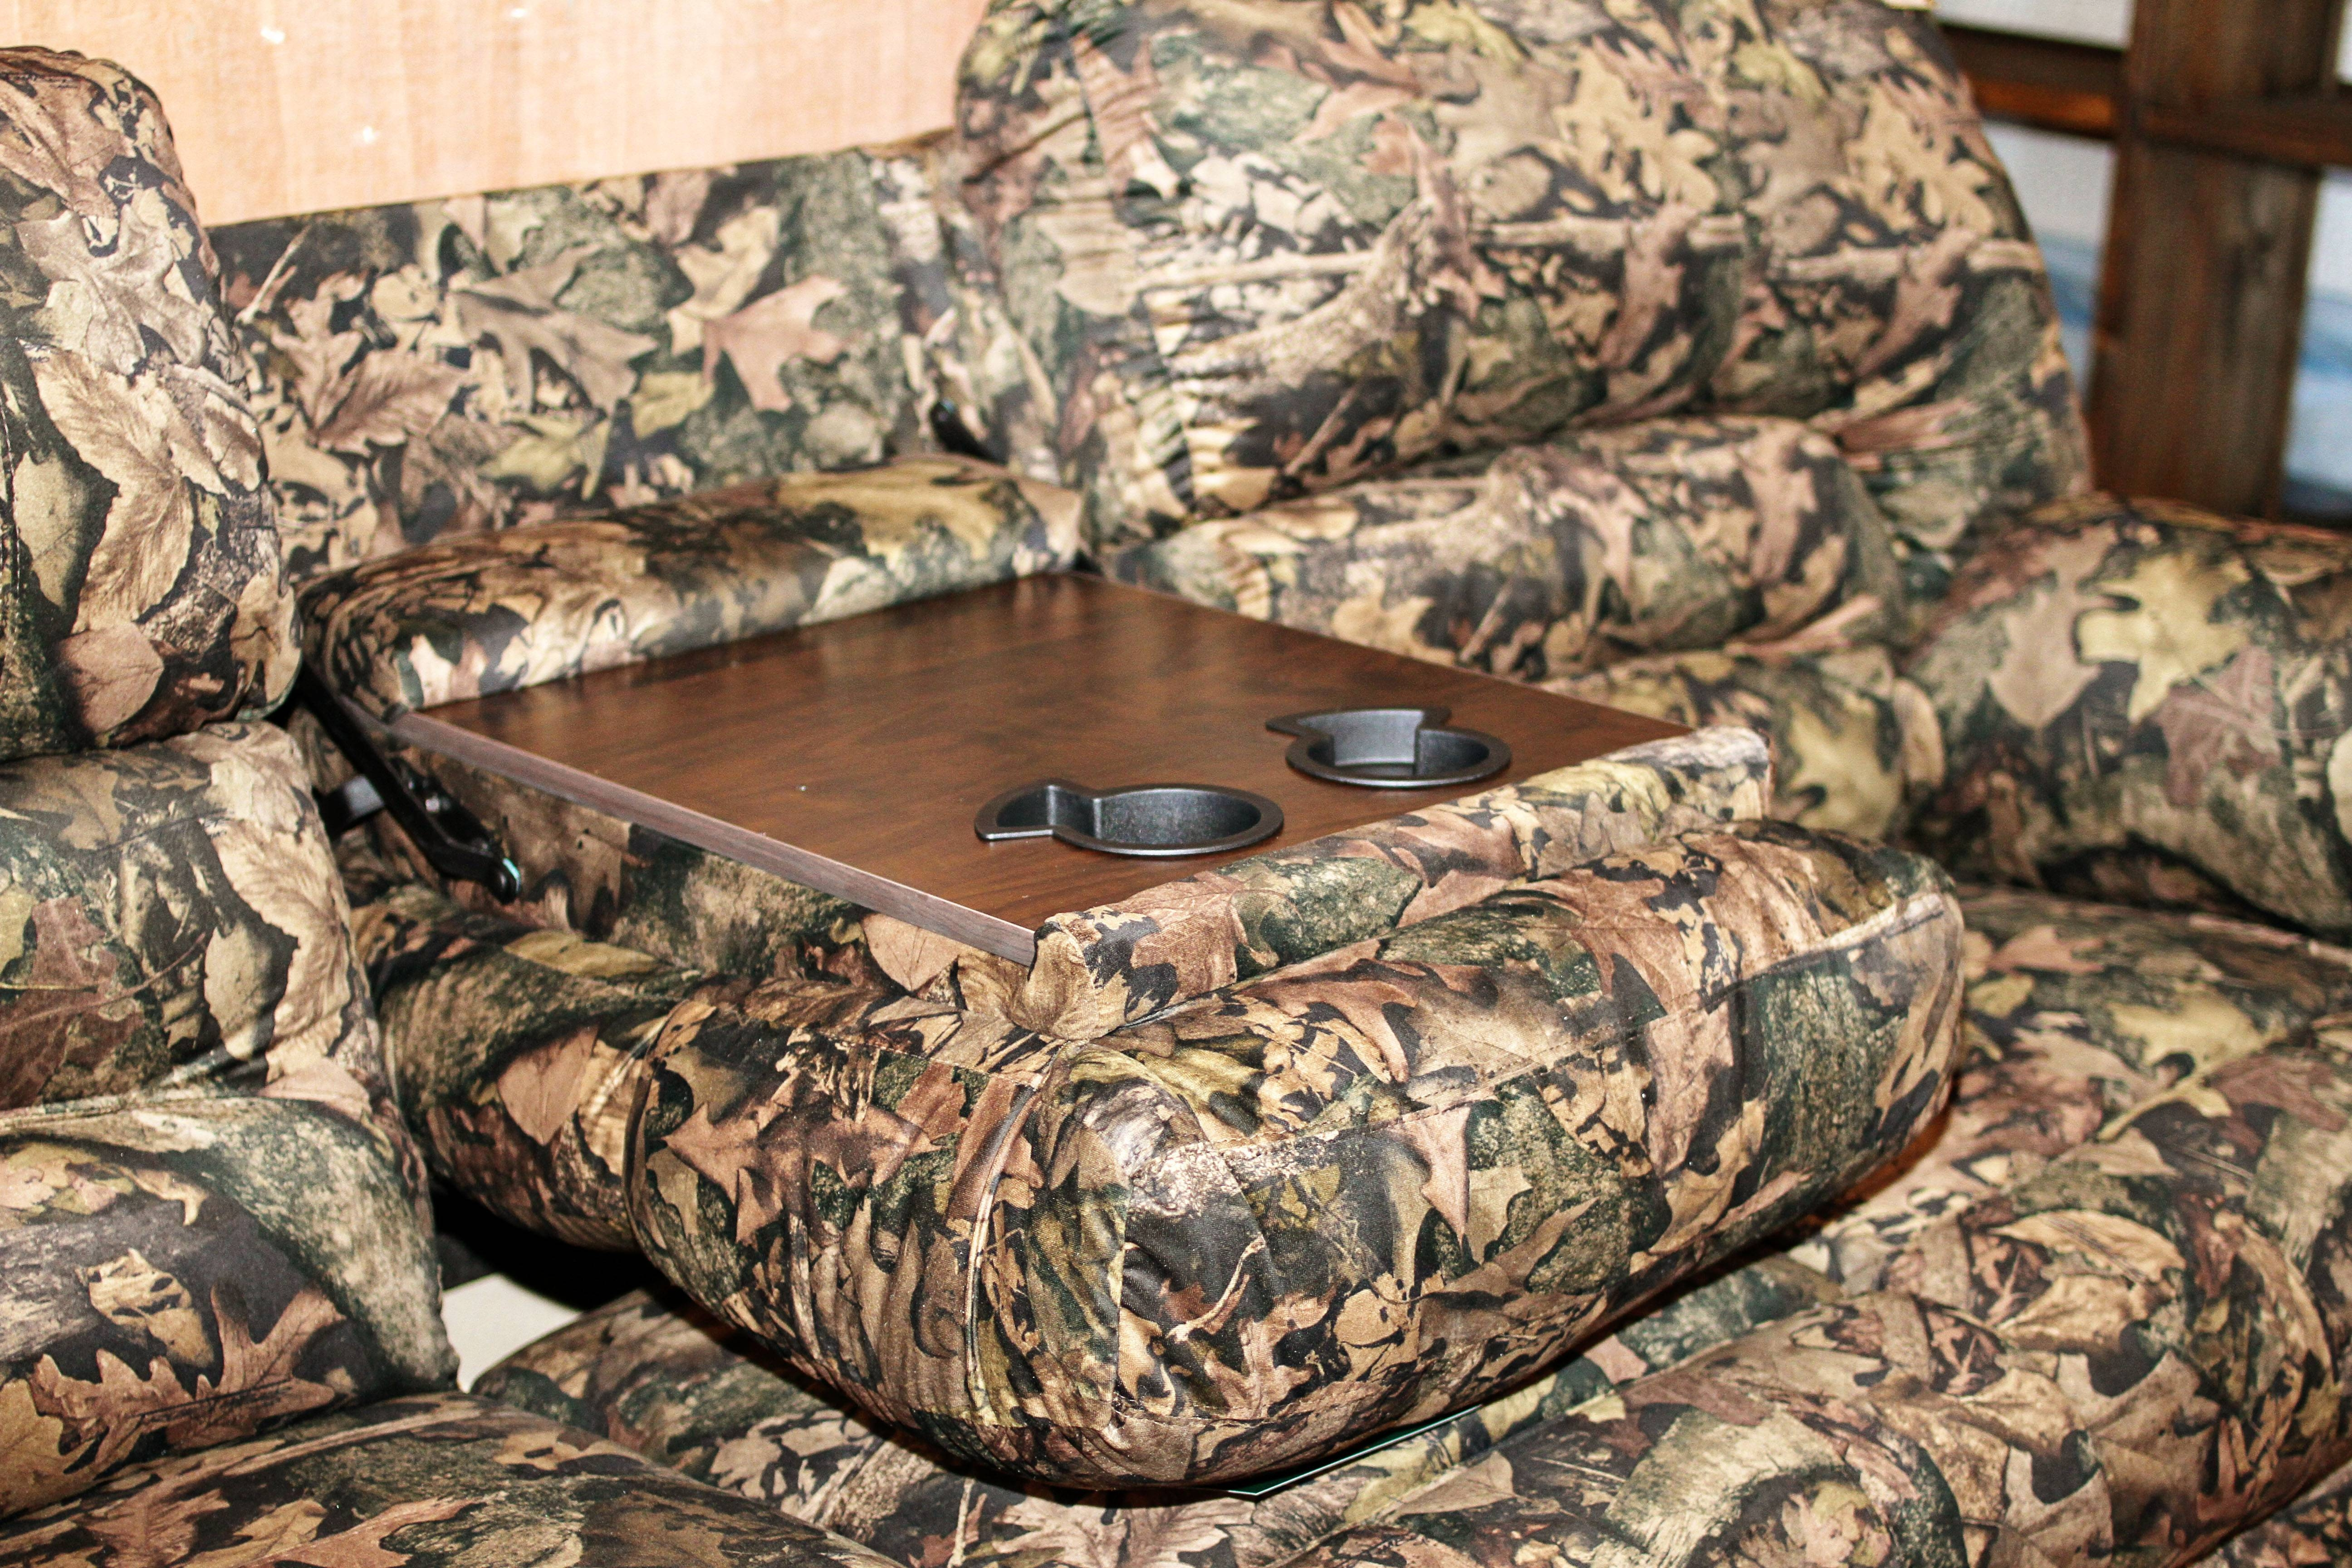 Camo Reclining Sofa - Bible-Saitama intended for Camo Reclining Sofas (Image 3 of 15)